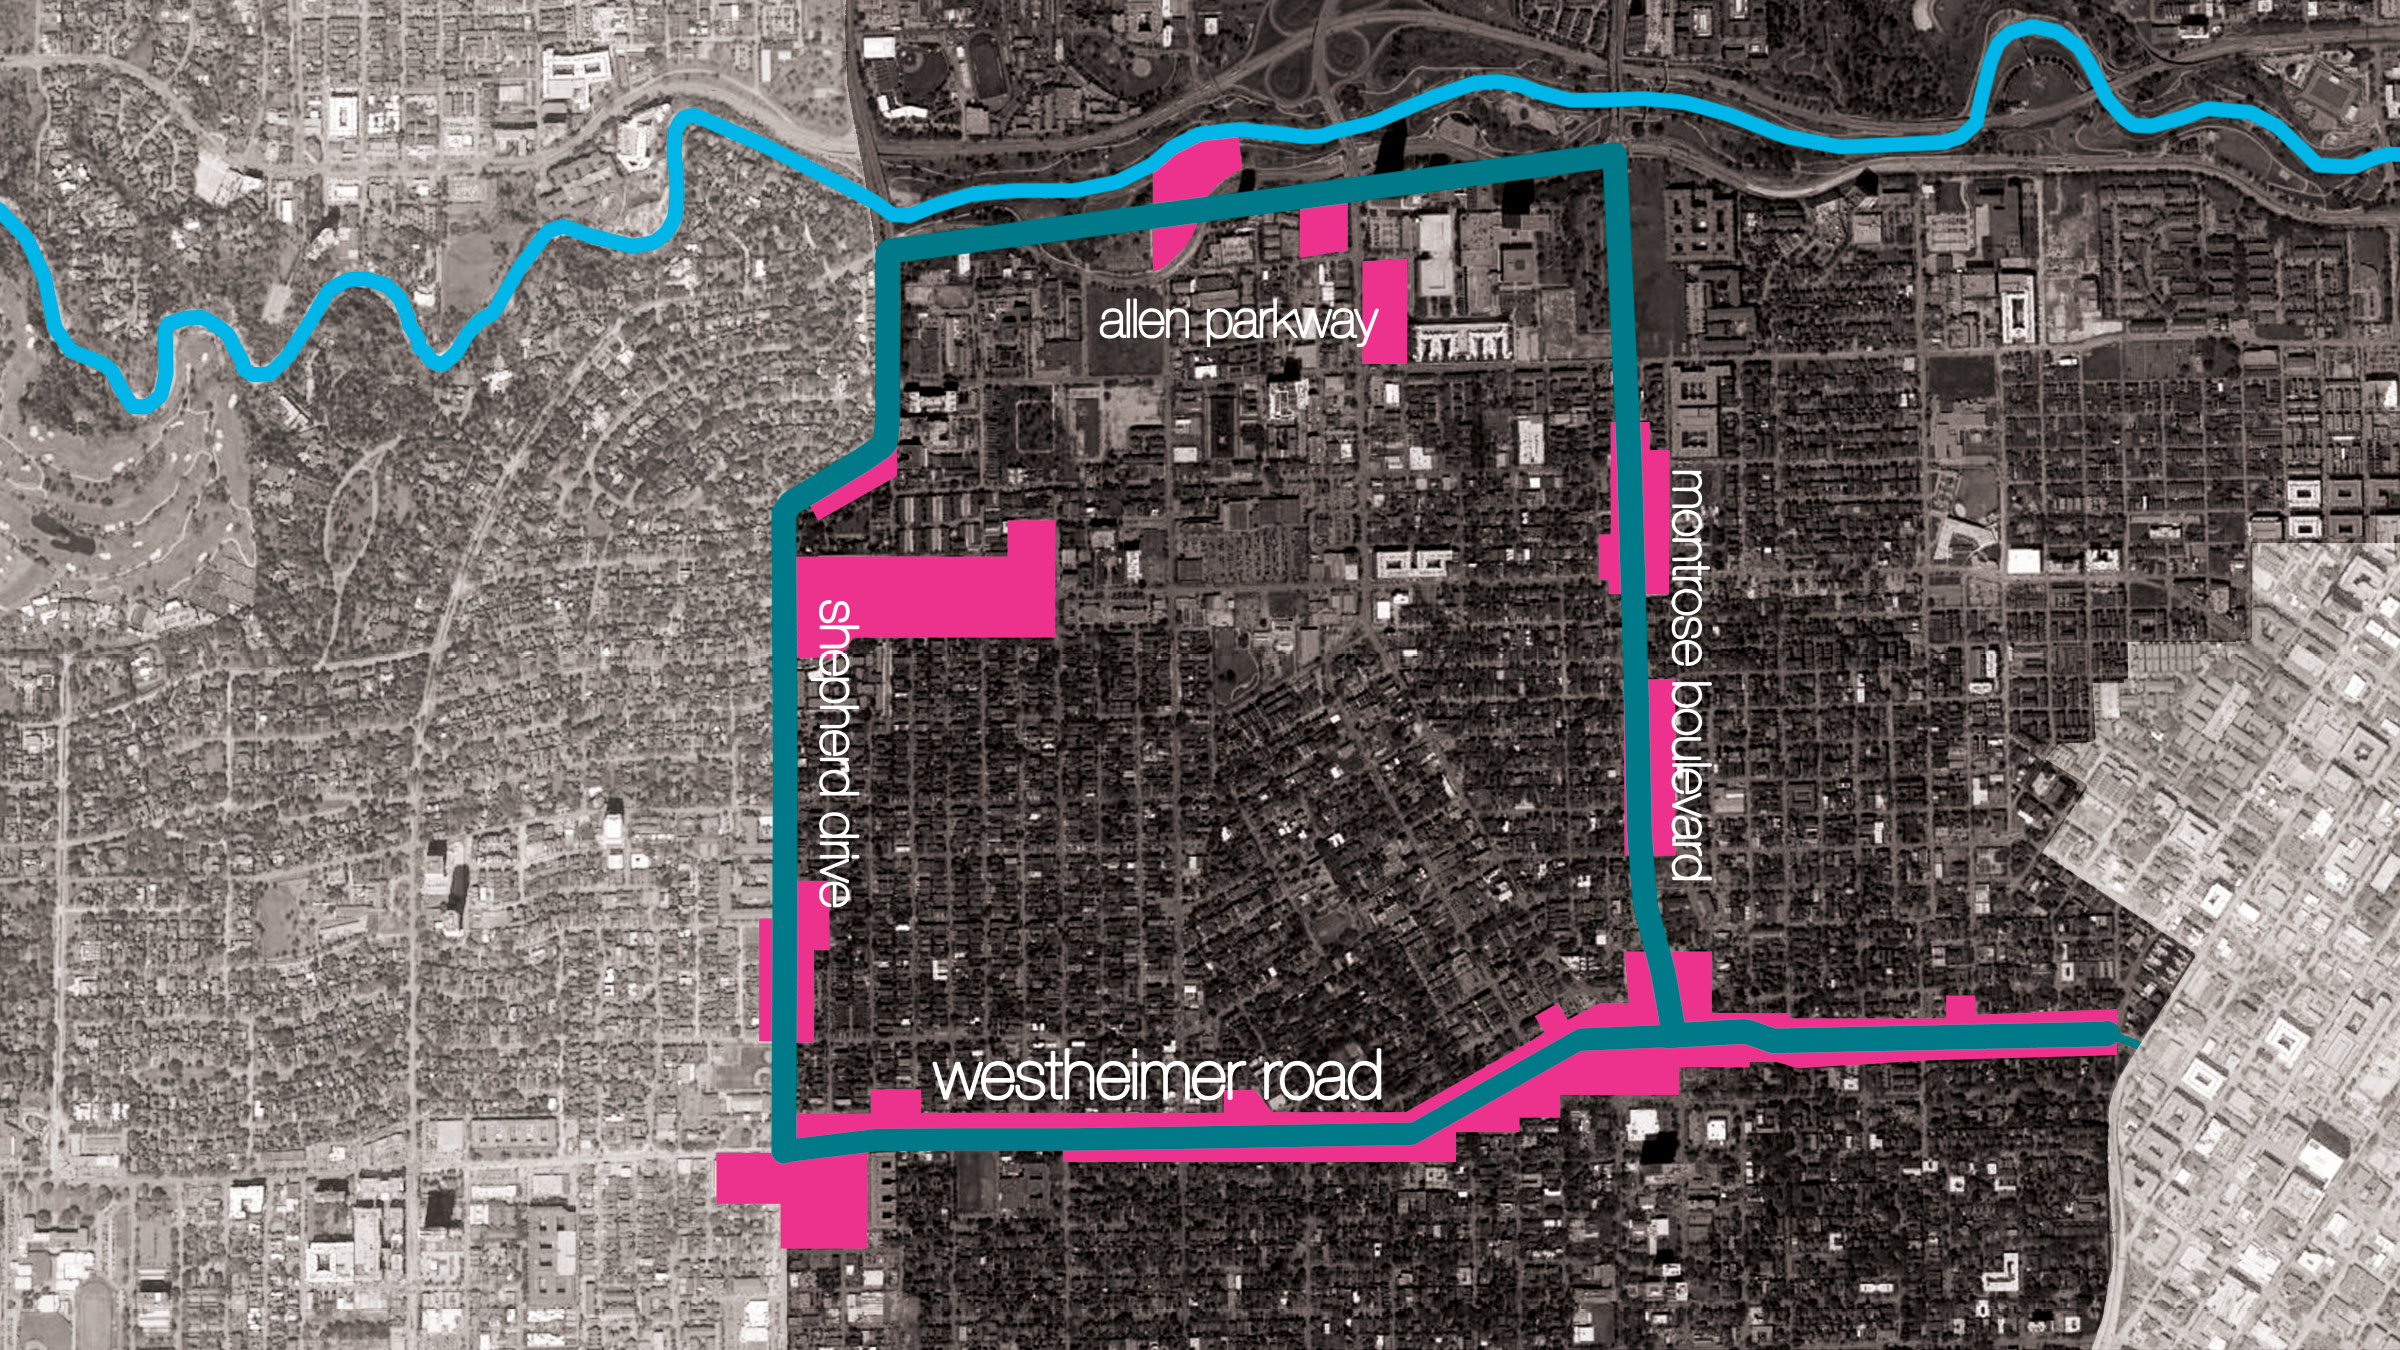 In phase 04 the gondola system proves to be successful and is extended to connect shepherd drive, allen parkway, montrose boulevard, and downtown